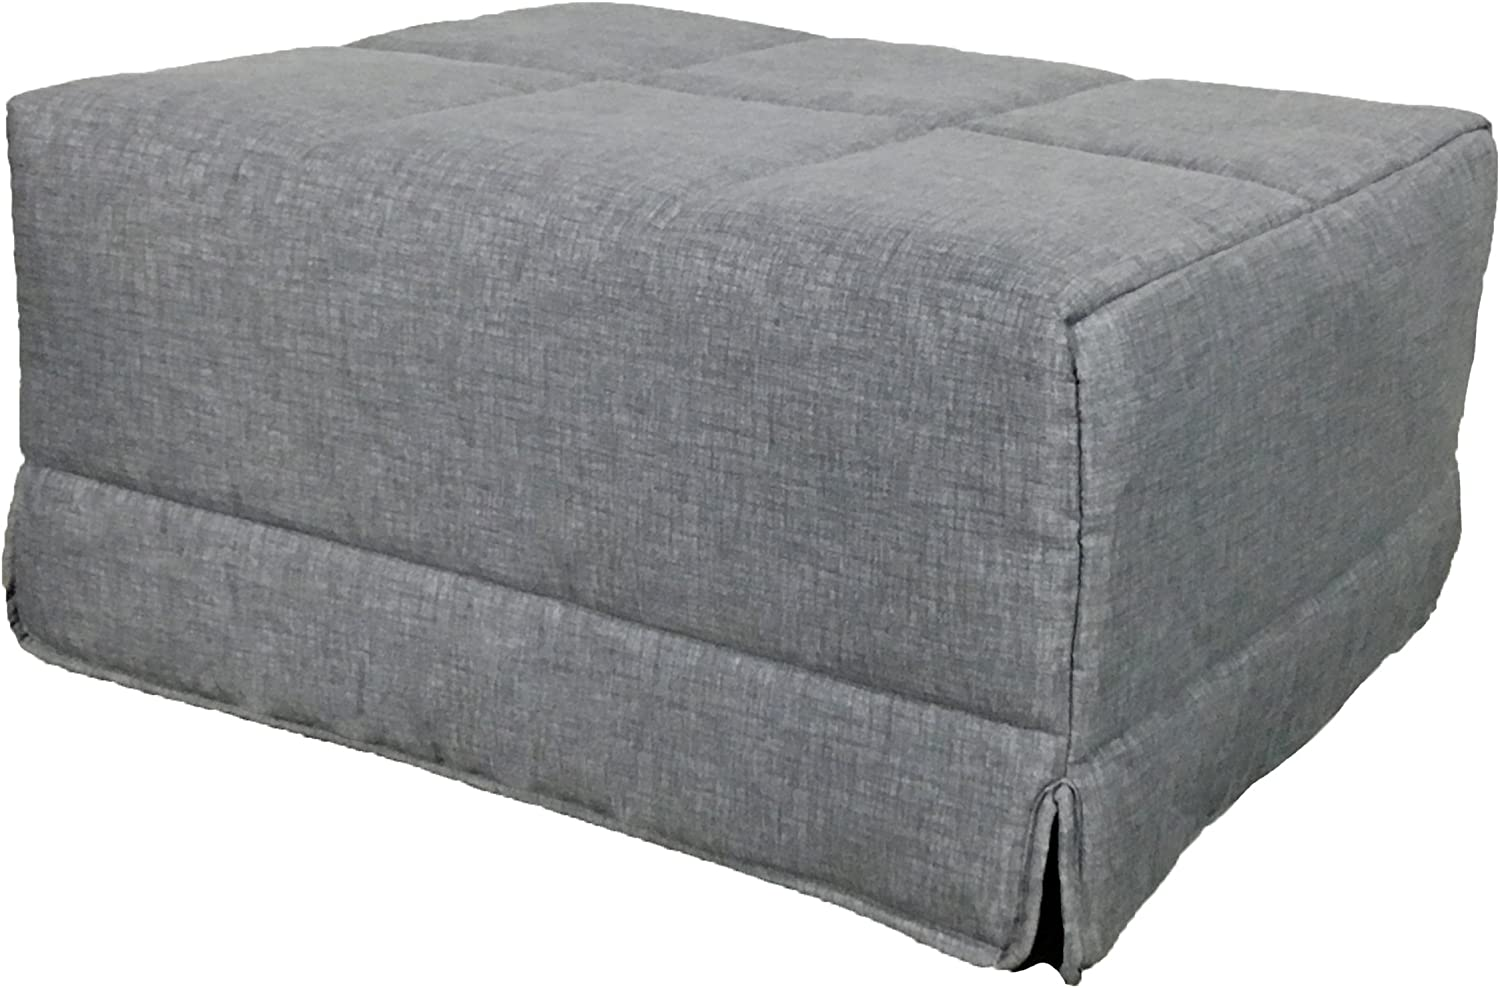 Sillon convertible en cama plegable ideal para ahorrar espacio ...